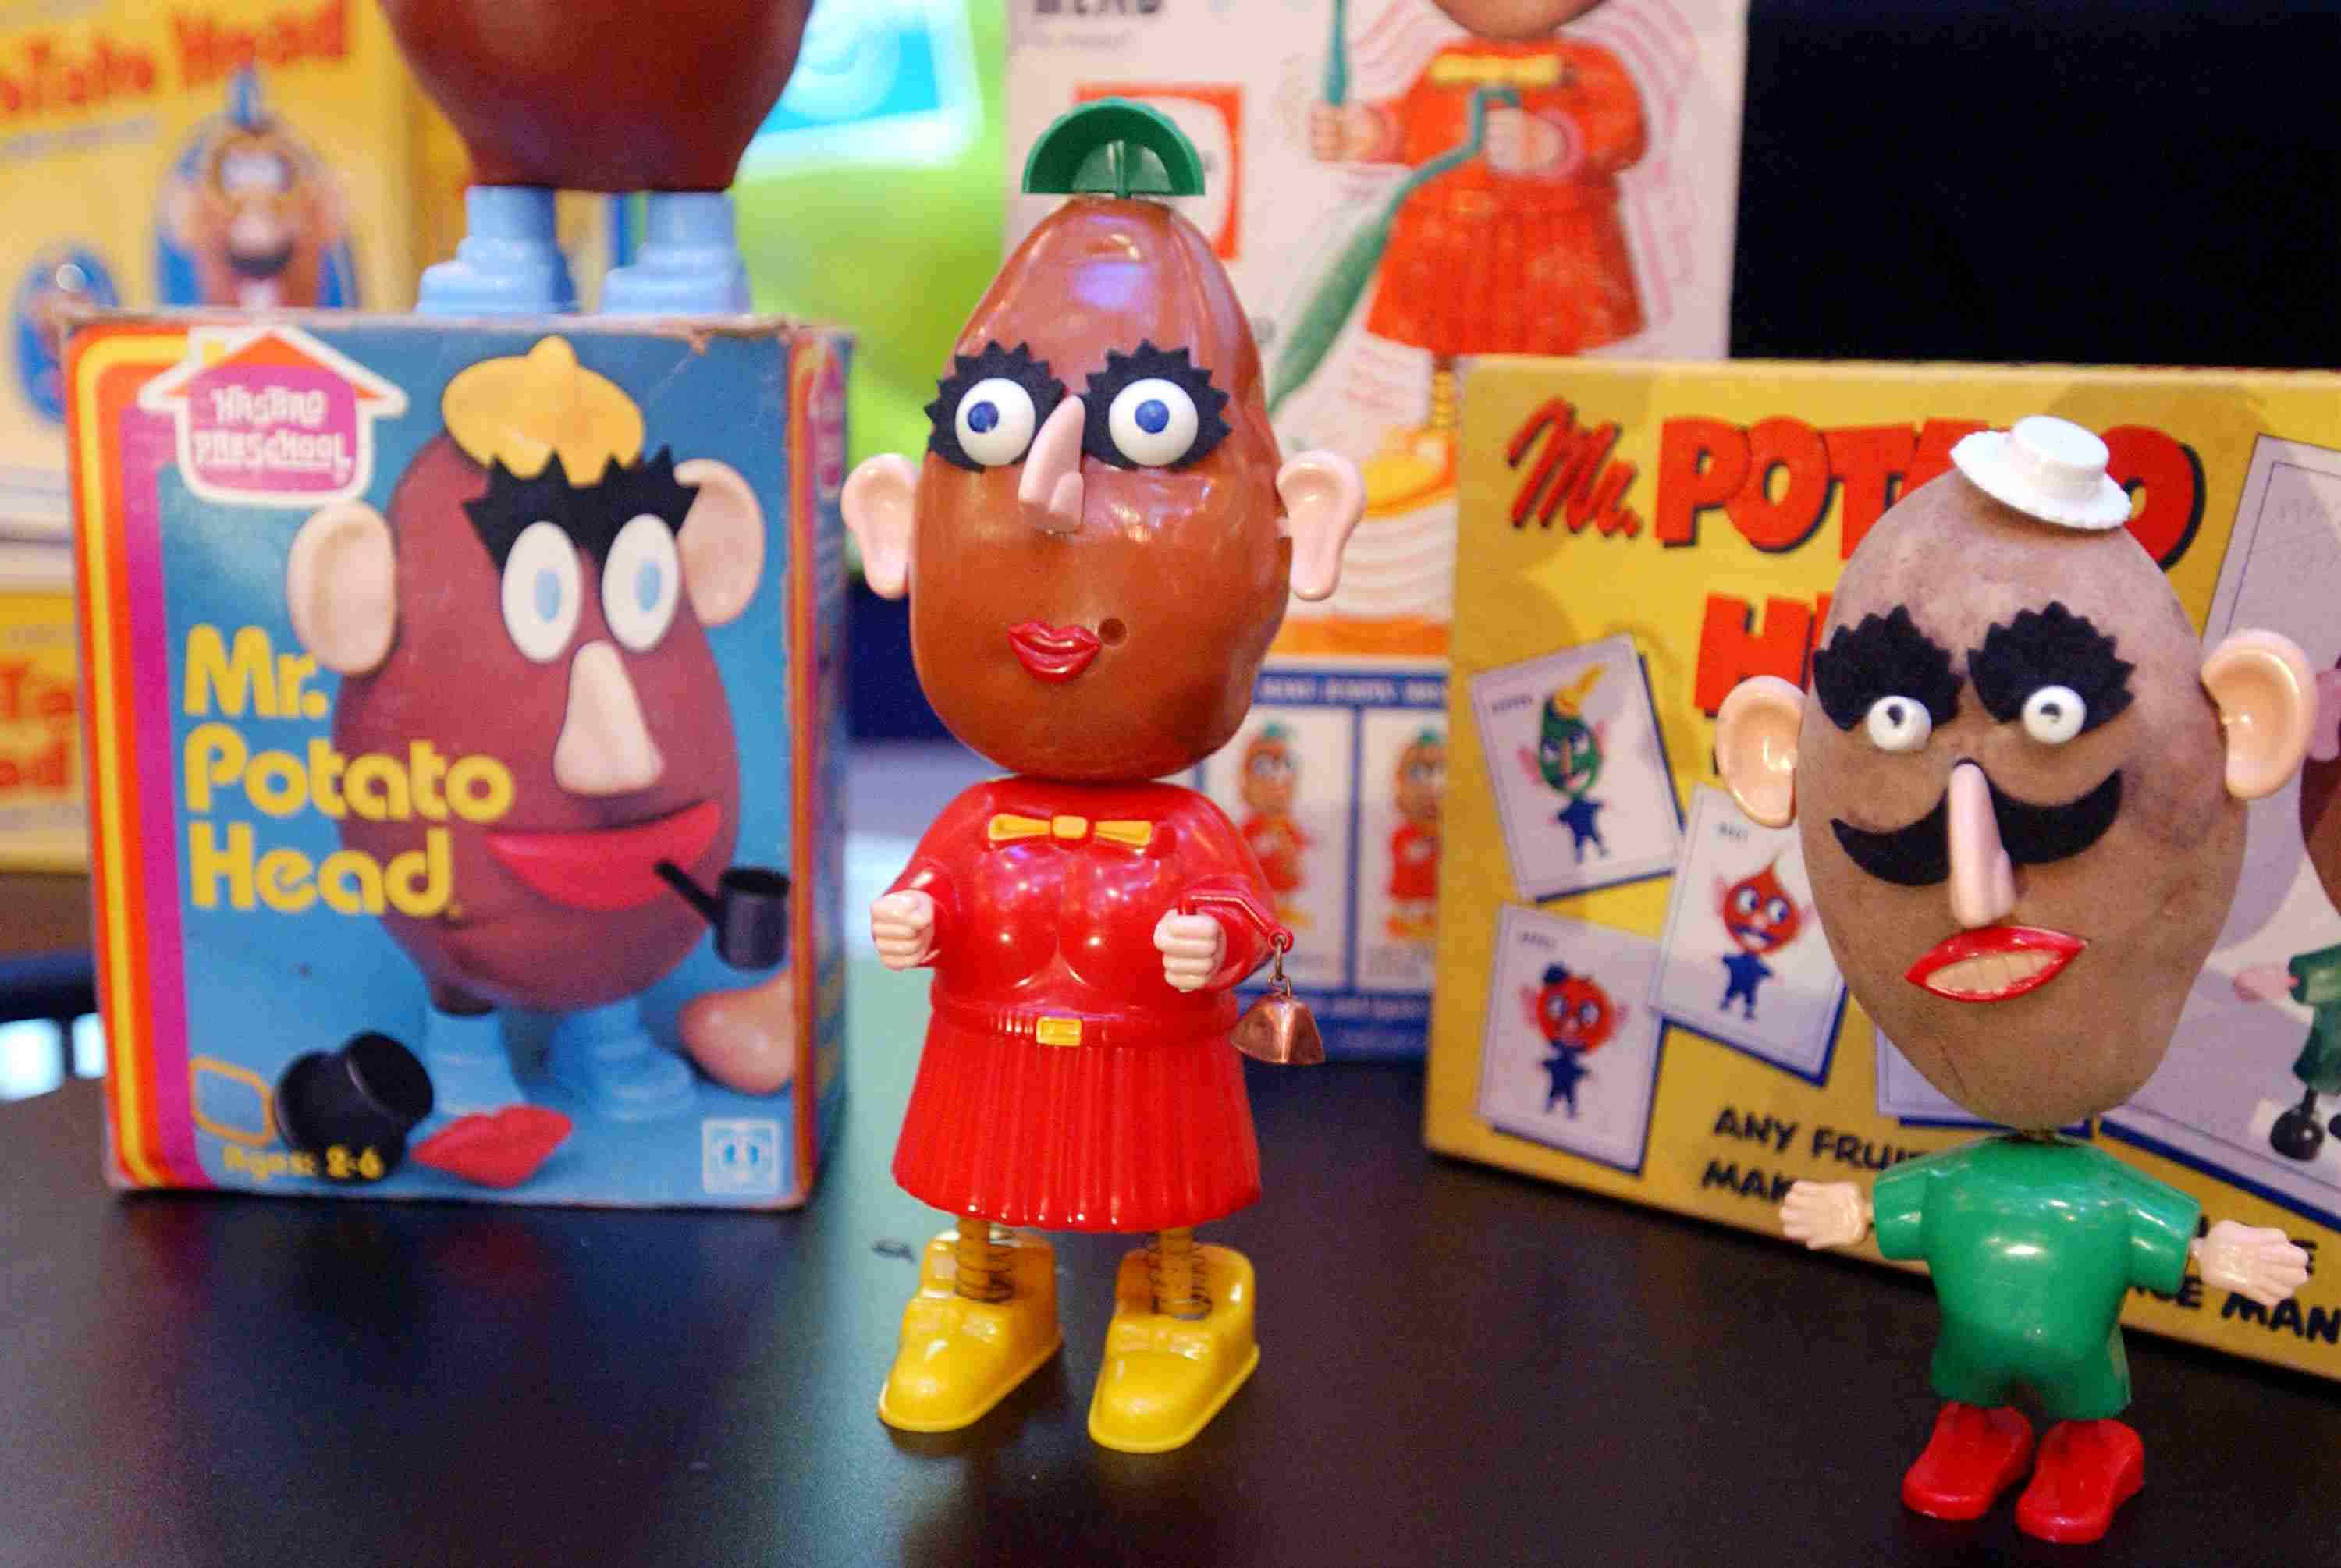 The History of Mr Potato Head